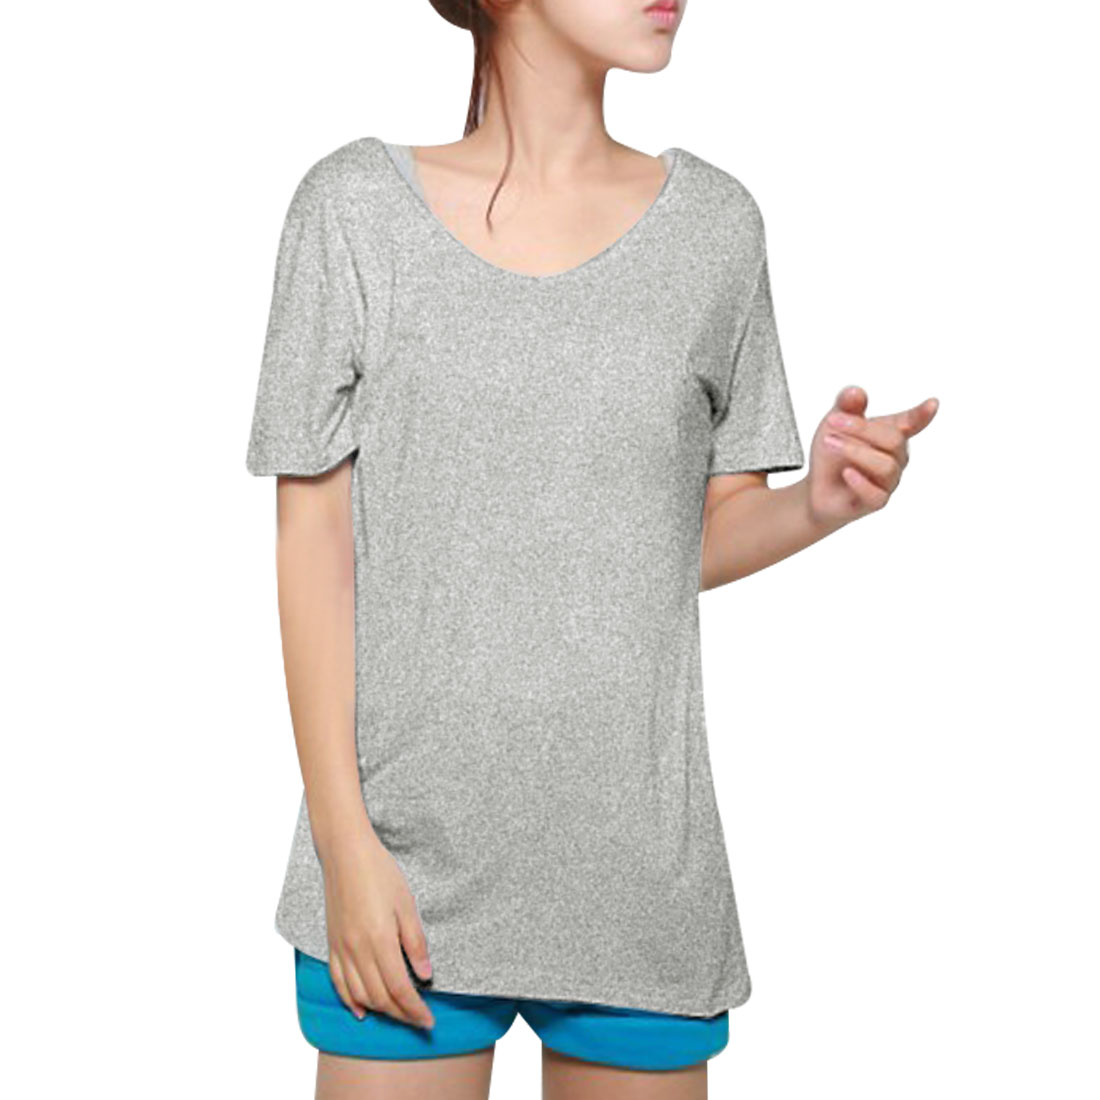 Ladies Summer Leisure V Neck Short Sleeve T-Shirt Gray XS